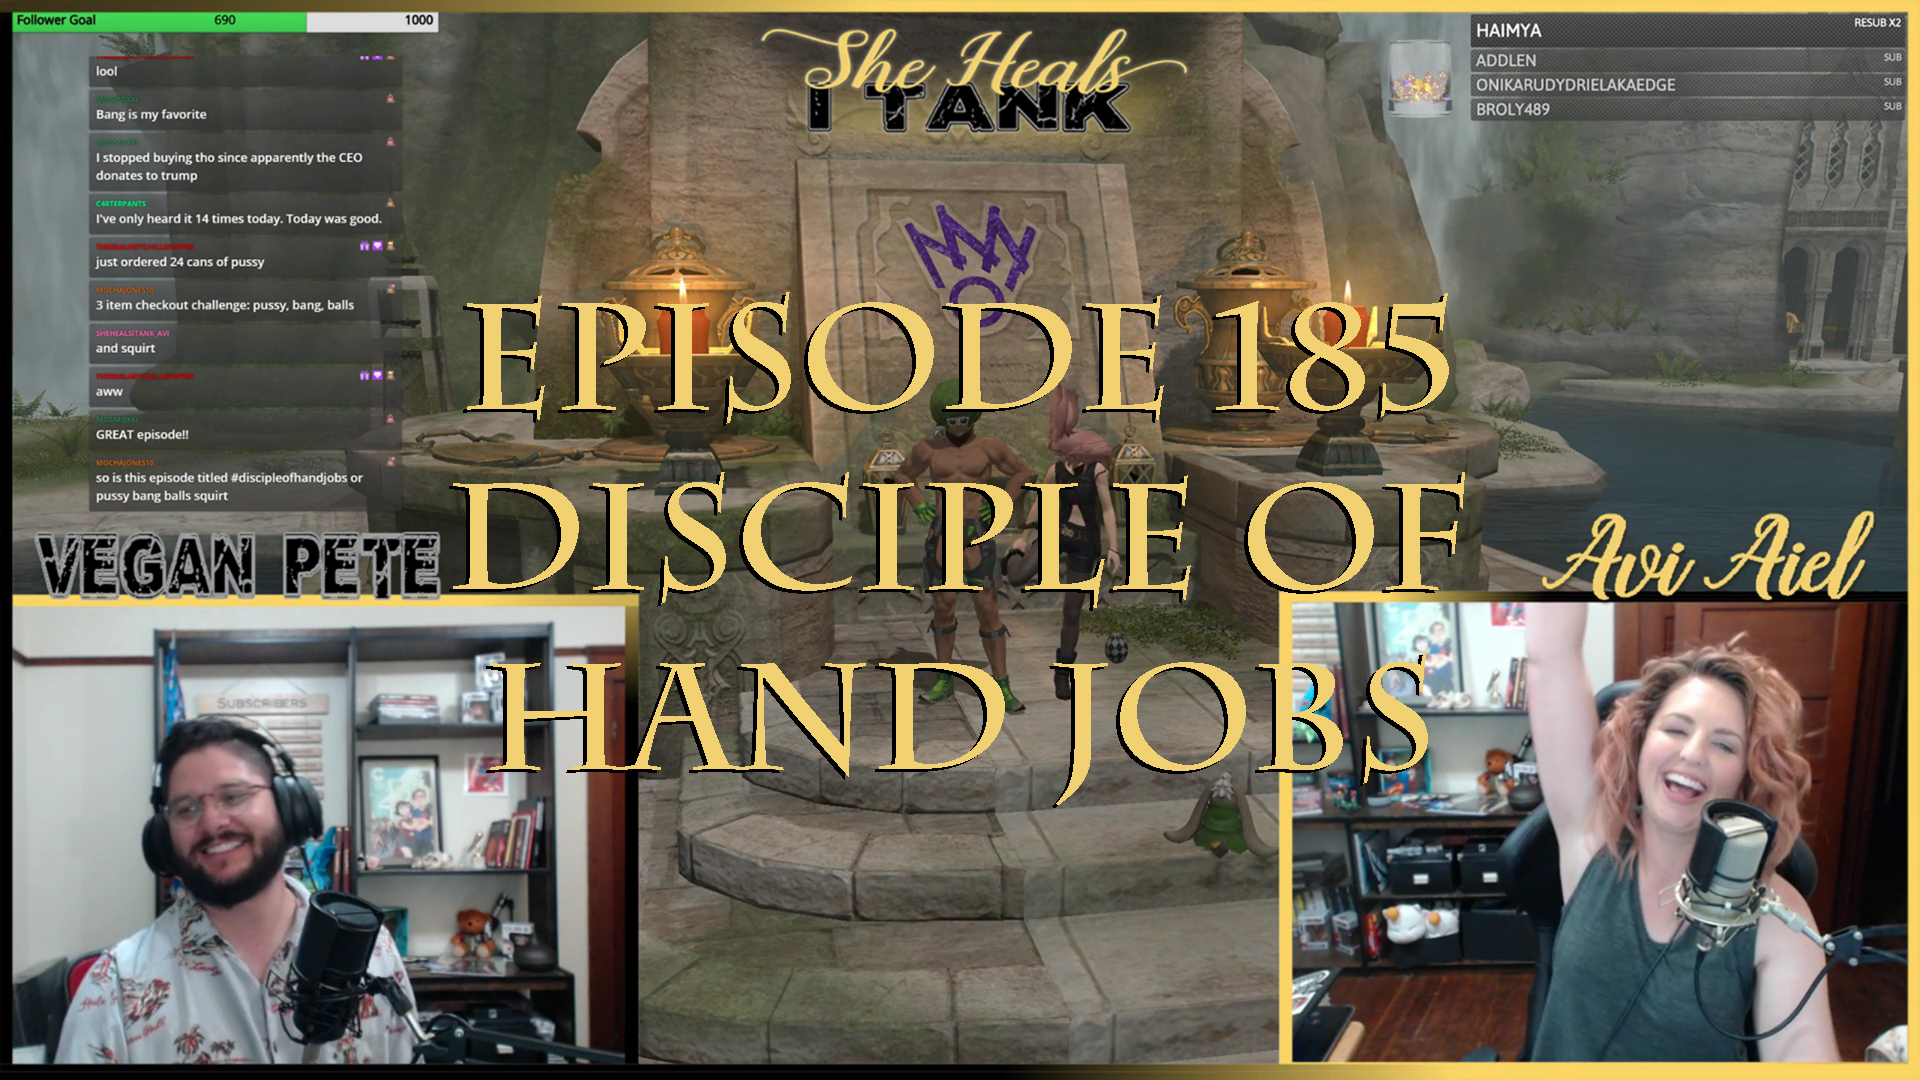 Episode 185: Disciple Of Hand Jobs She Heals I Tank: A